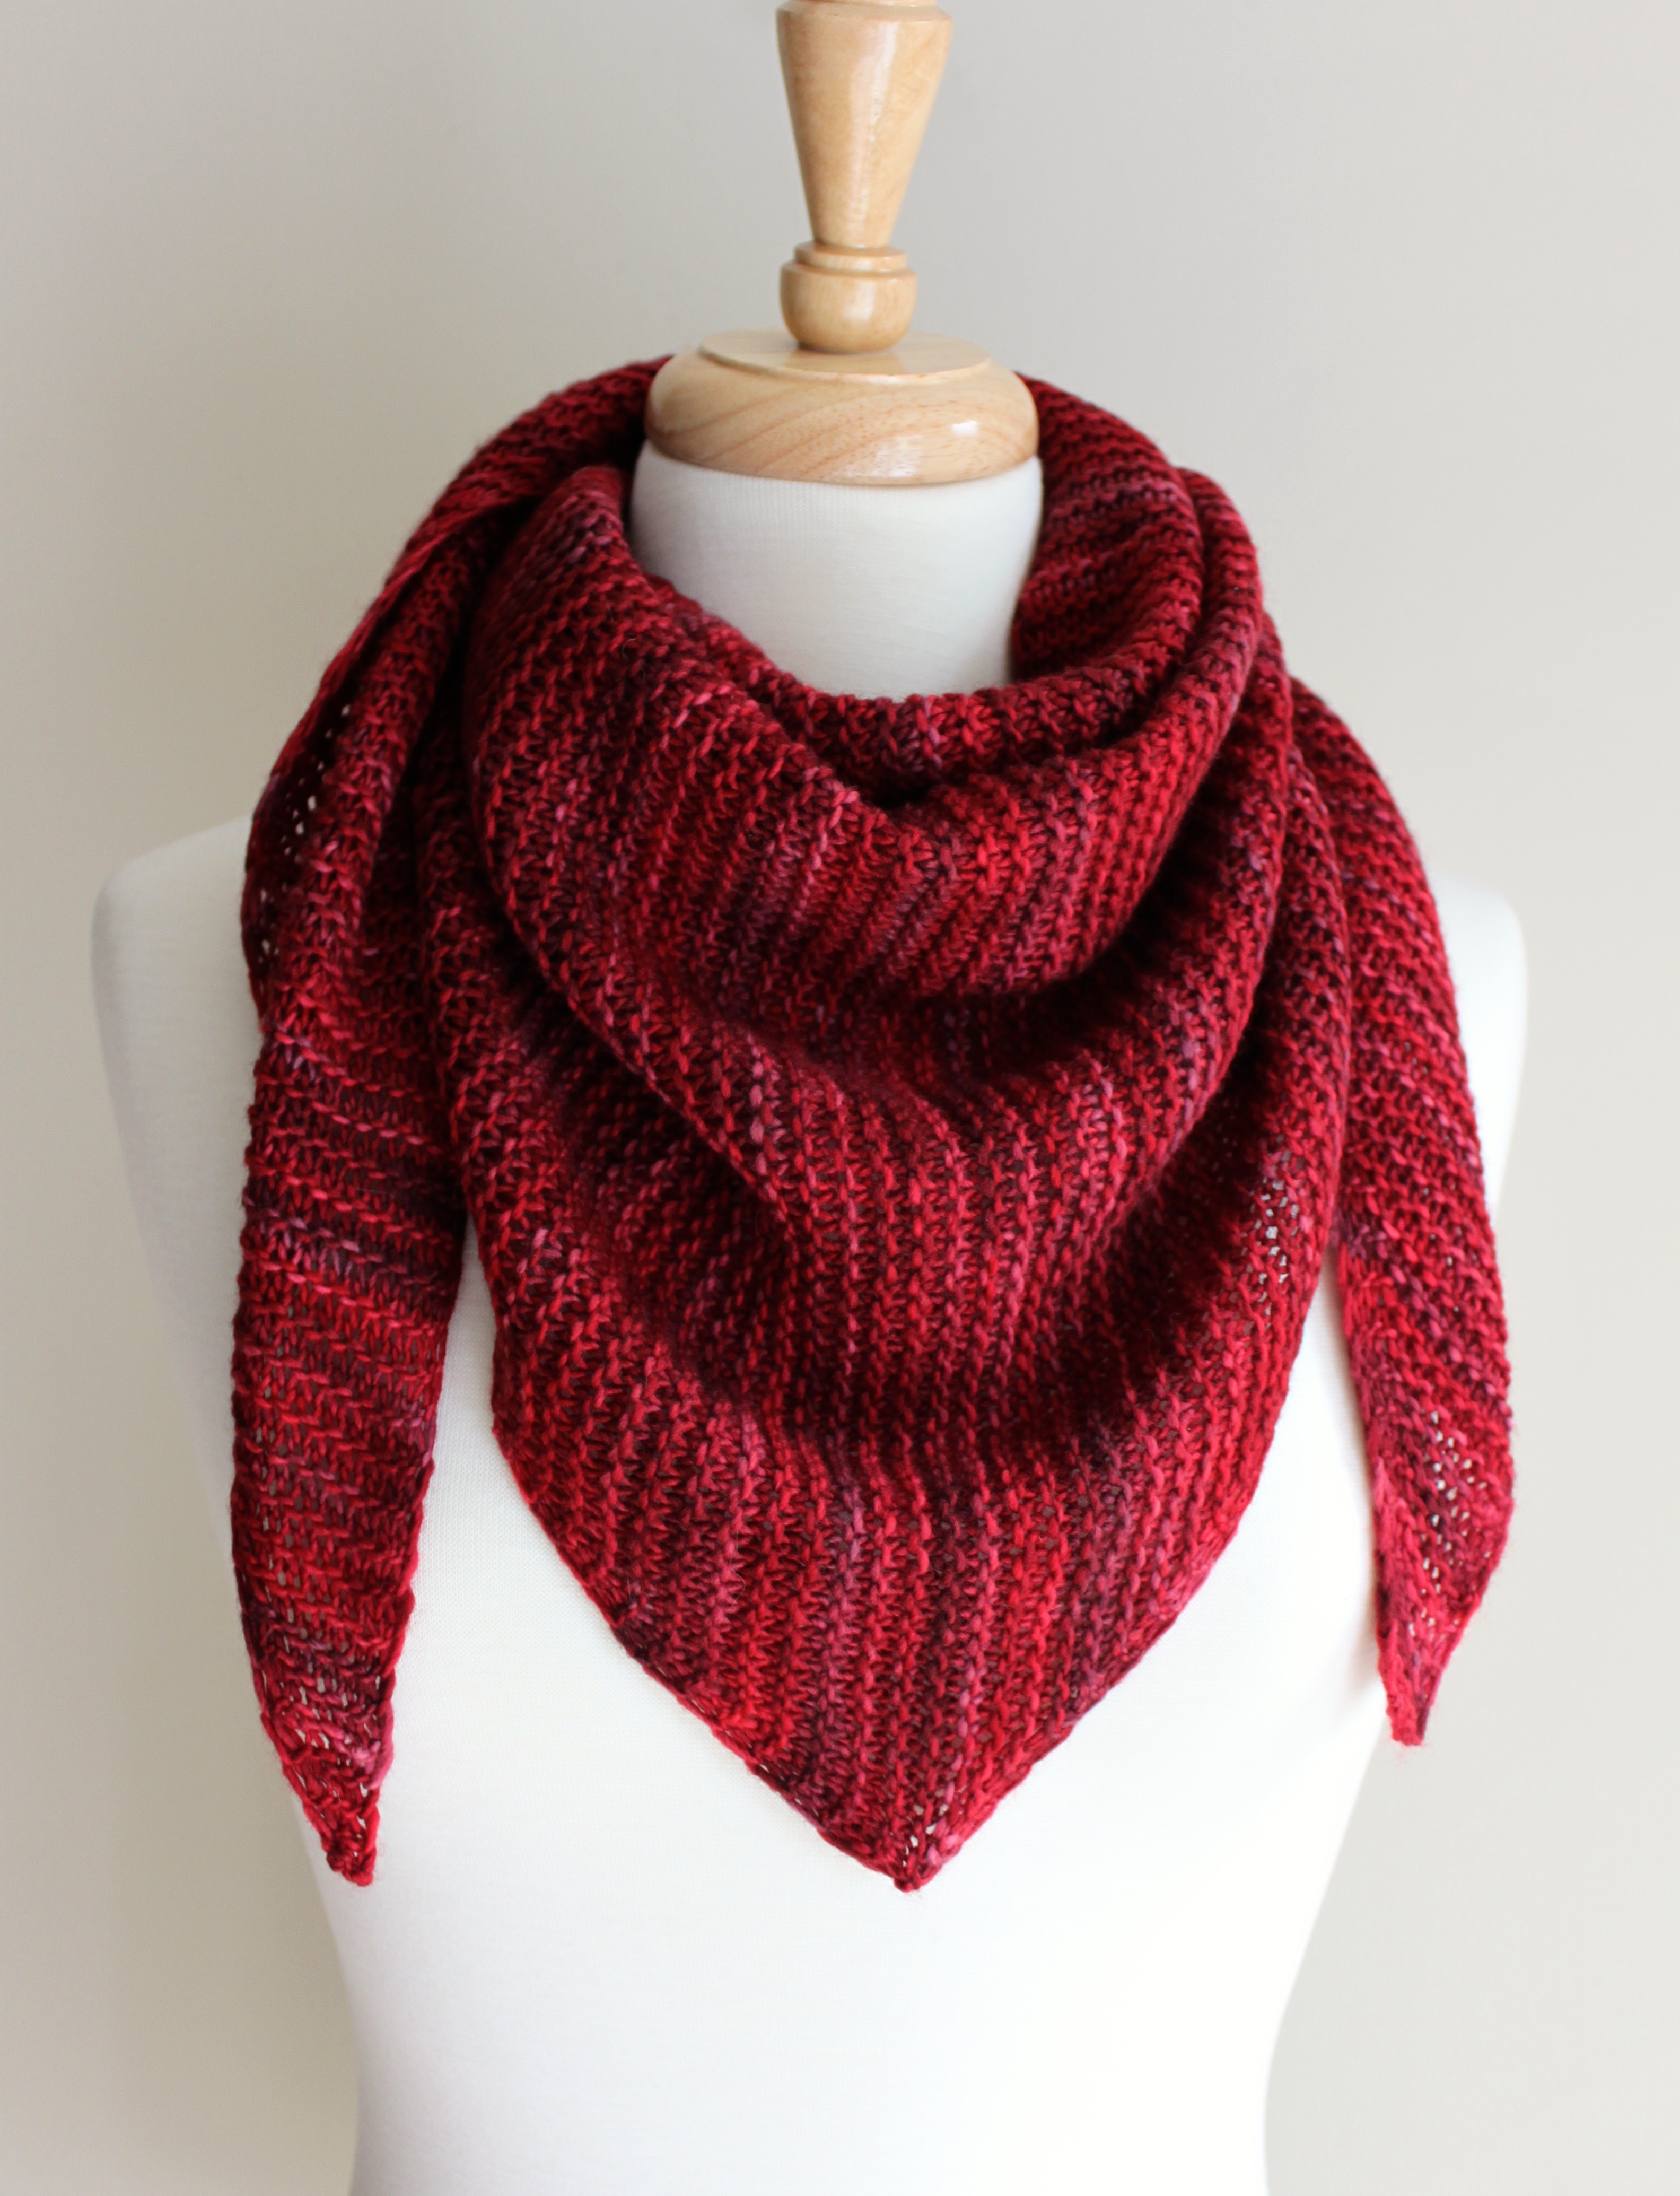 New Free Knitting Patterns Truly Triangular Scarf Leah Knitting Design Of Incredible 42 Images Knitting Design